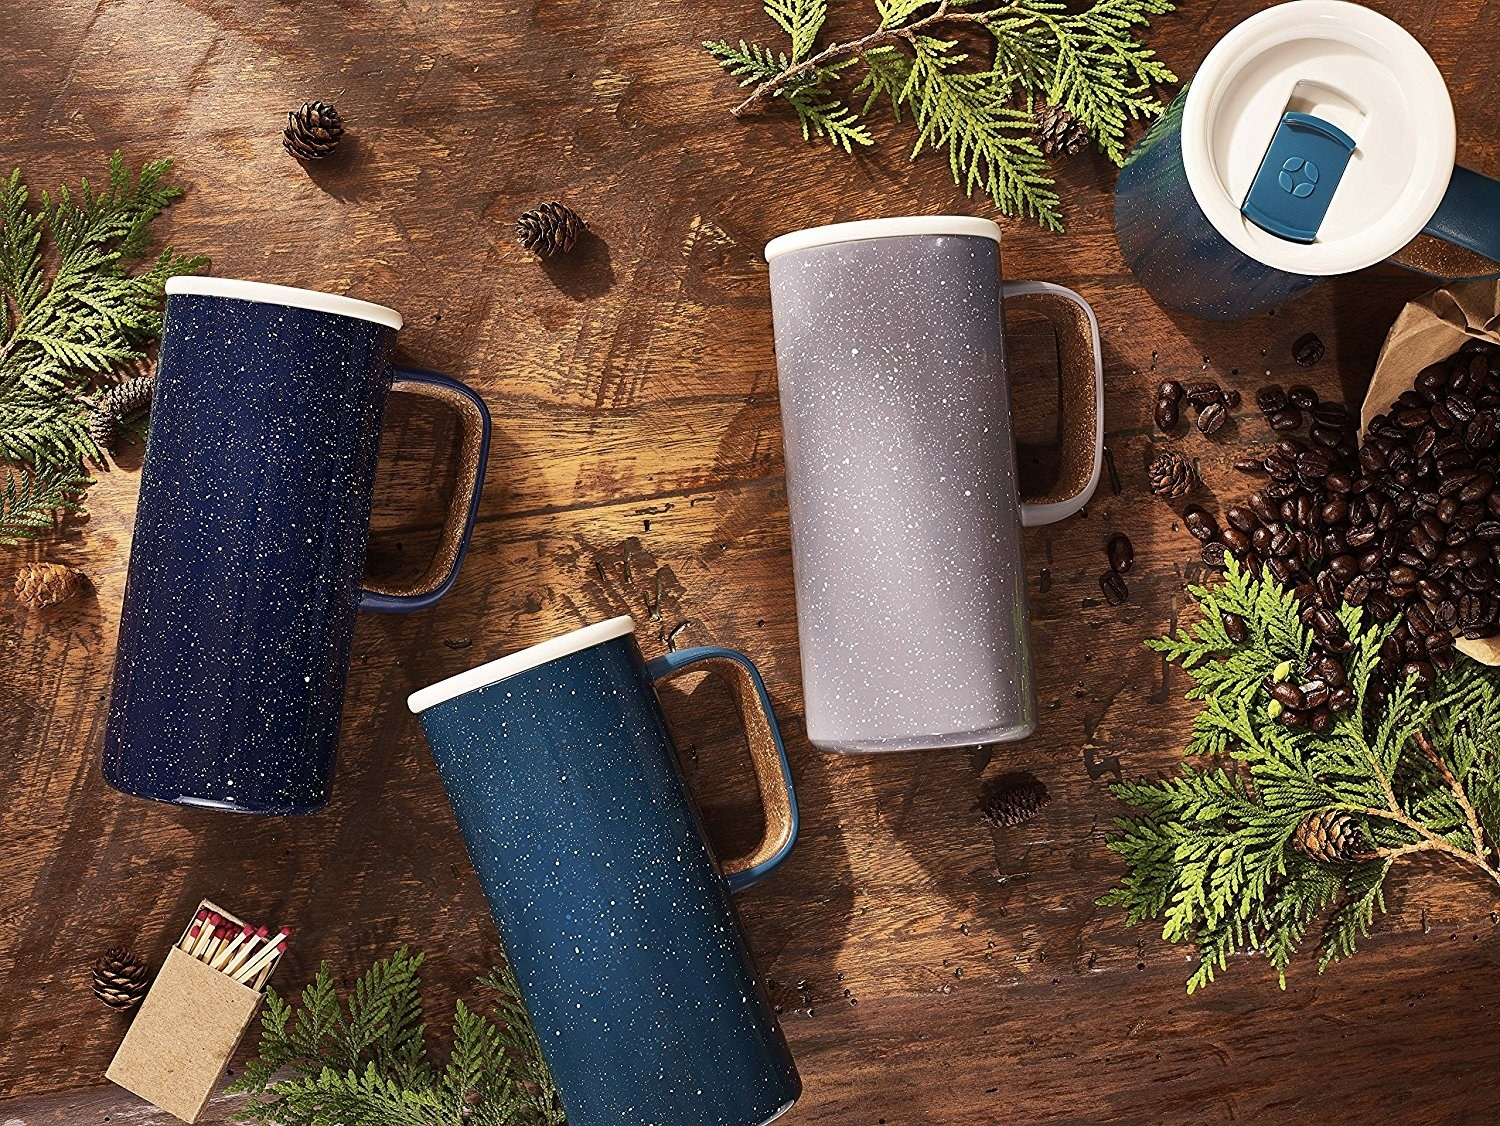 speckled cylindrical mugs